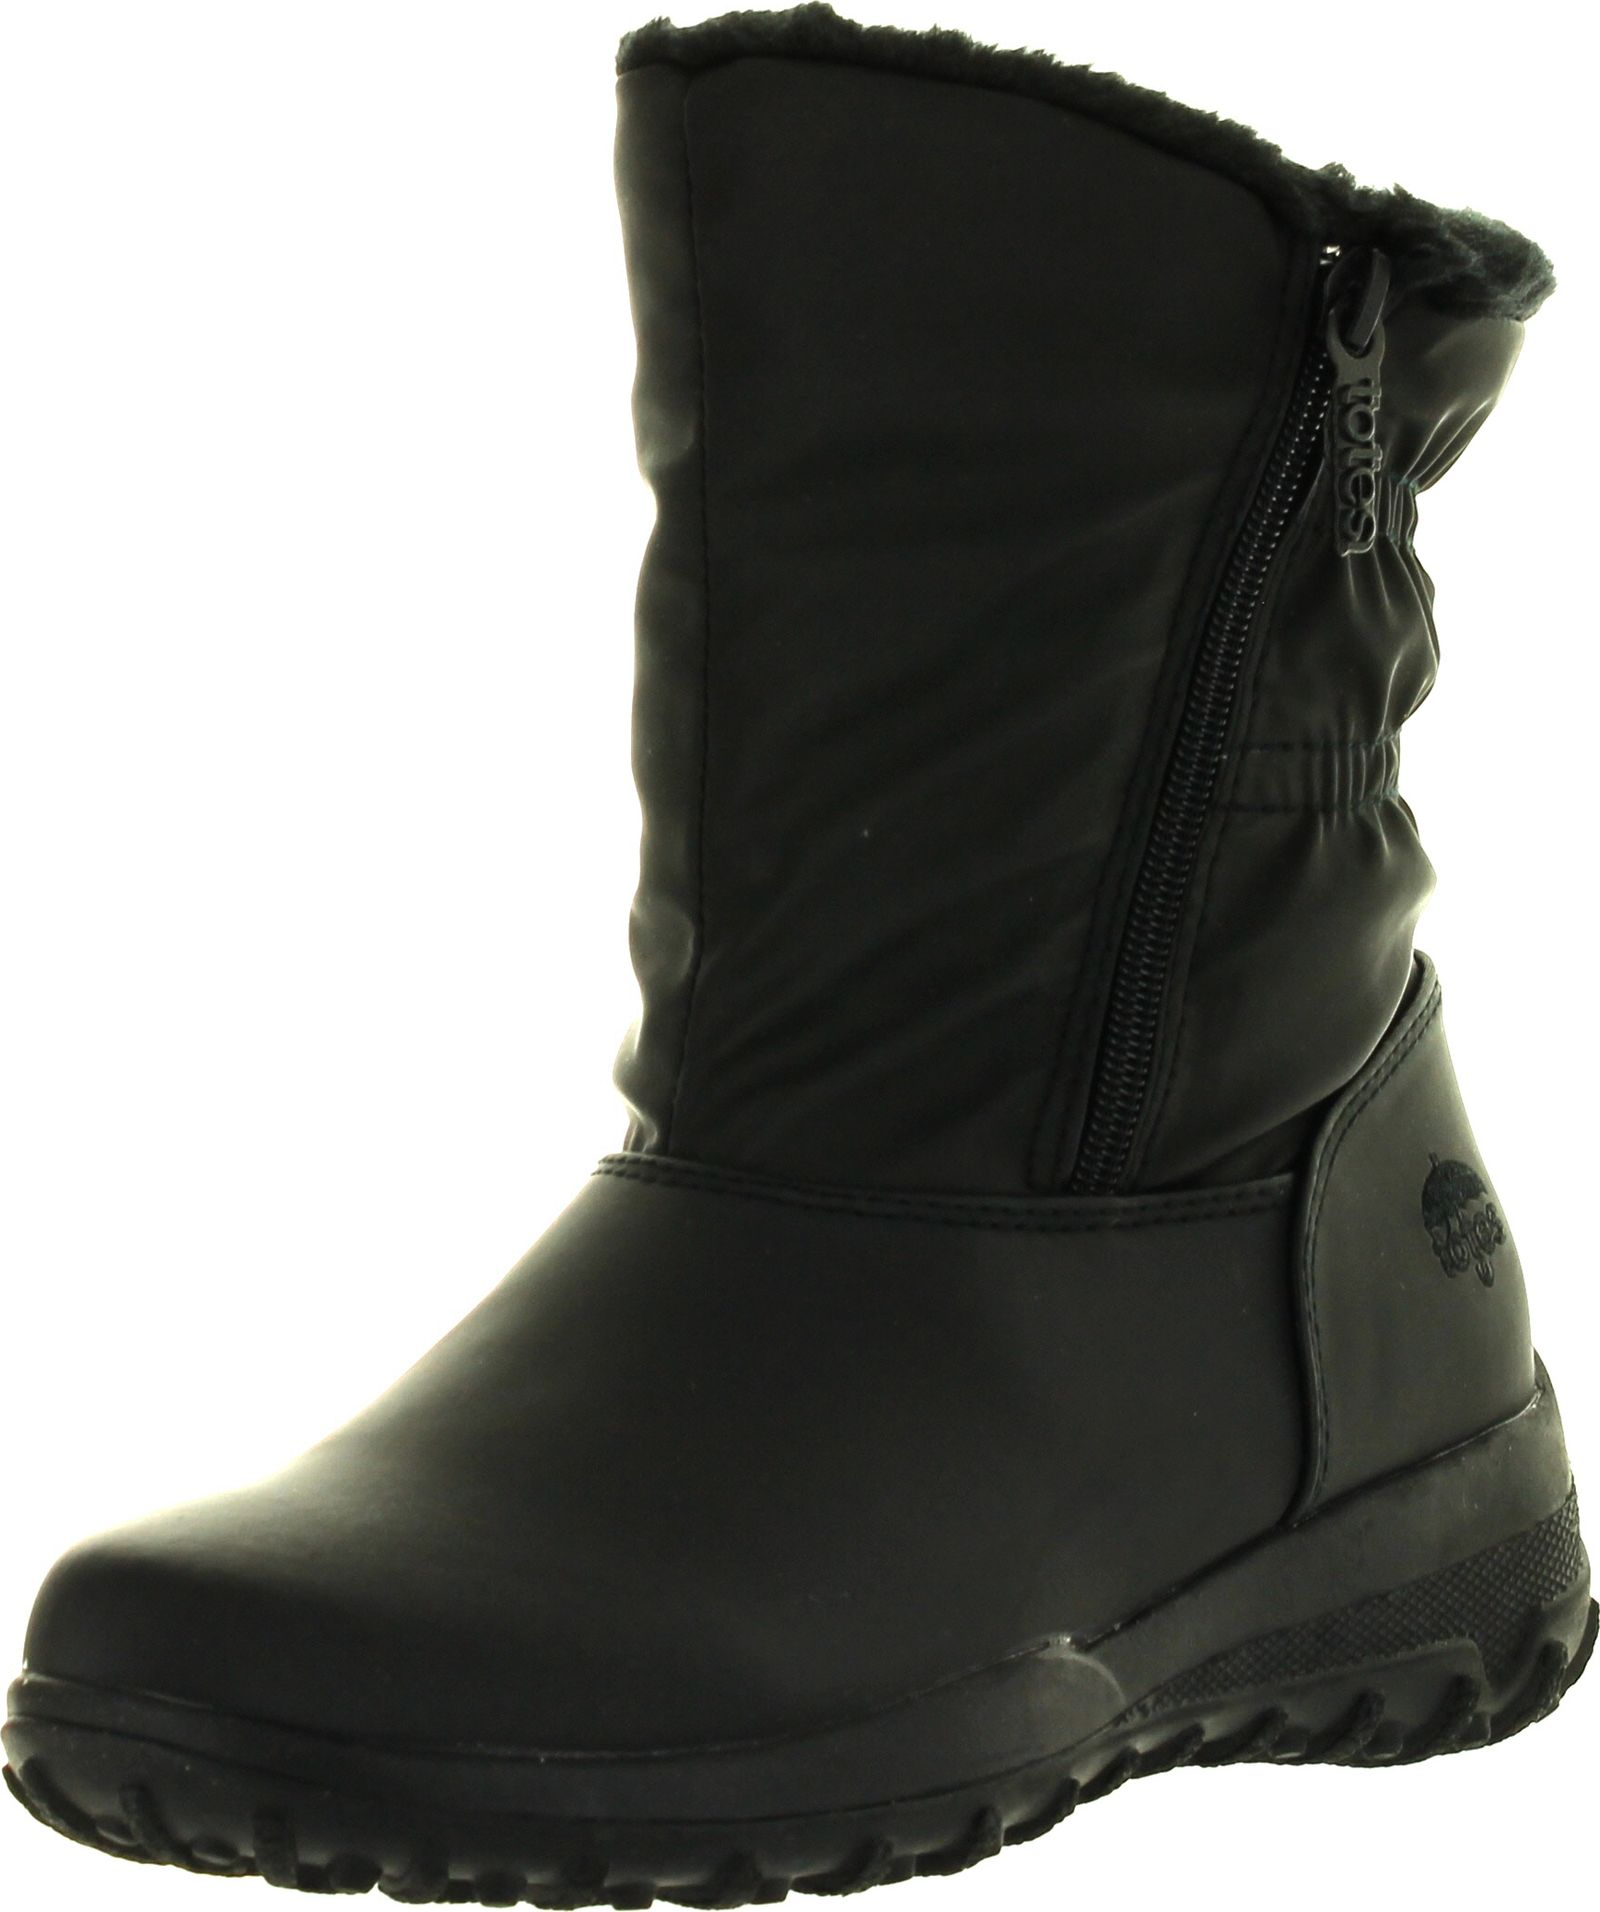 Innovative When Buying The Best Womens Travel Shoes And Boots For Upcoming Fall And Winter Vacations, I Am Unswayed By The  To Your Weight Limit You Might Want To Wear Them On The Plane Waterproof Suede Boots Make Awesome Travel Boots